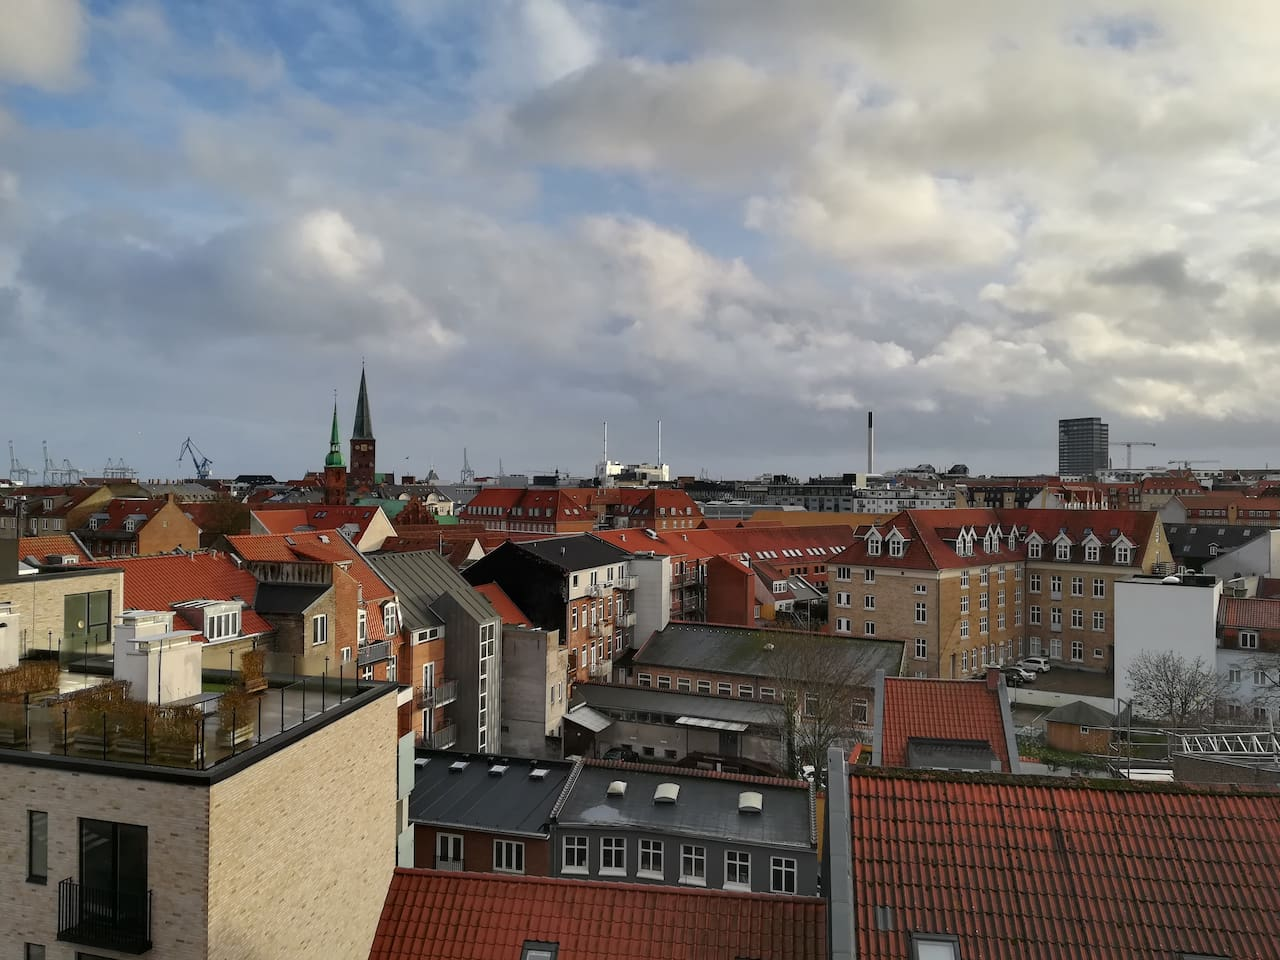 Beautiful view over the red roofs of Aarhus.